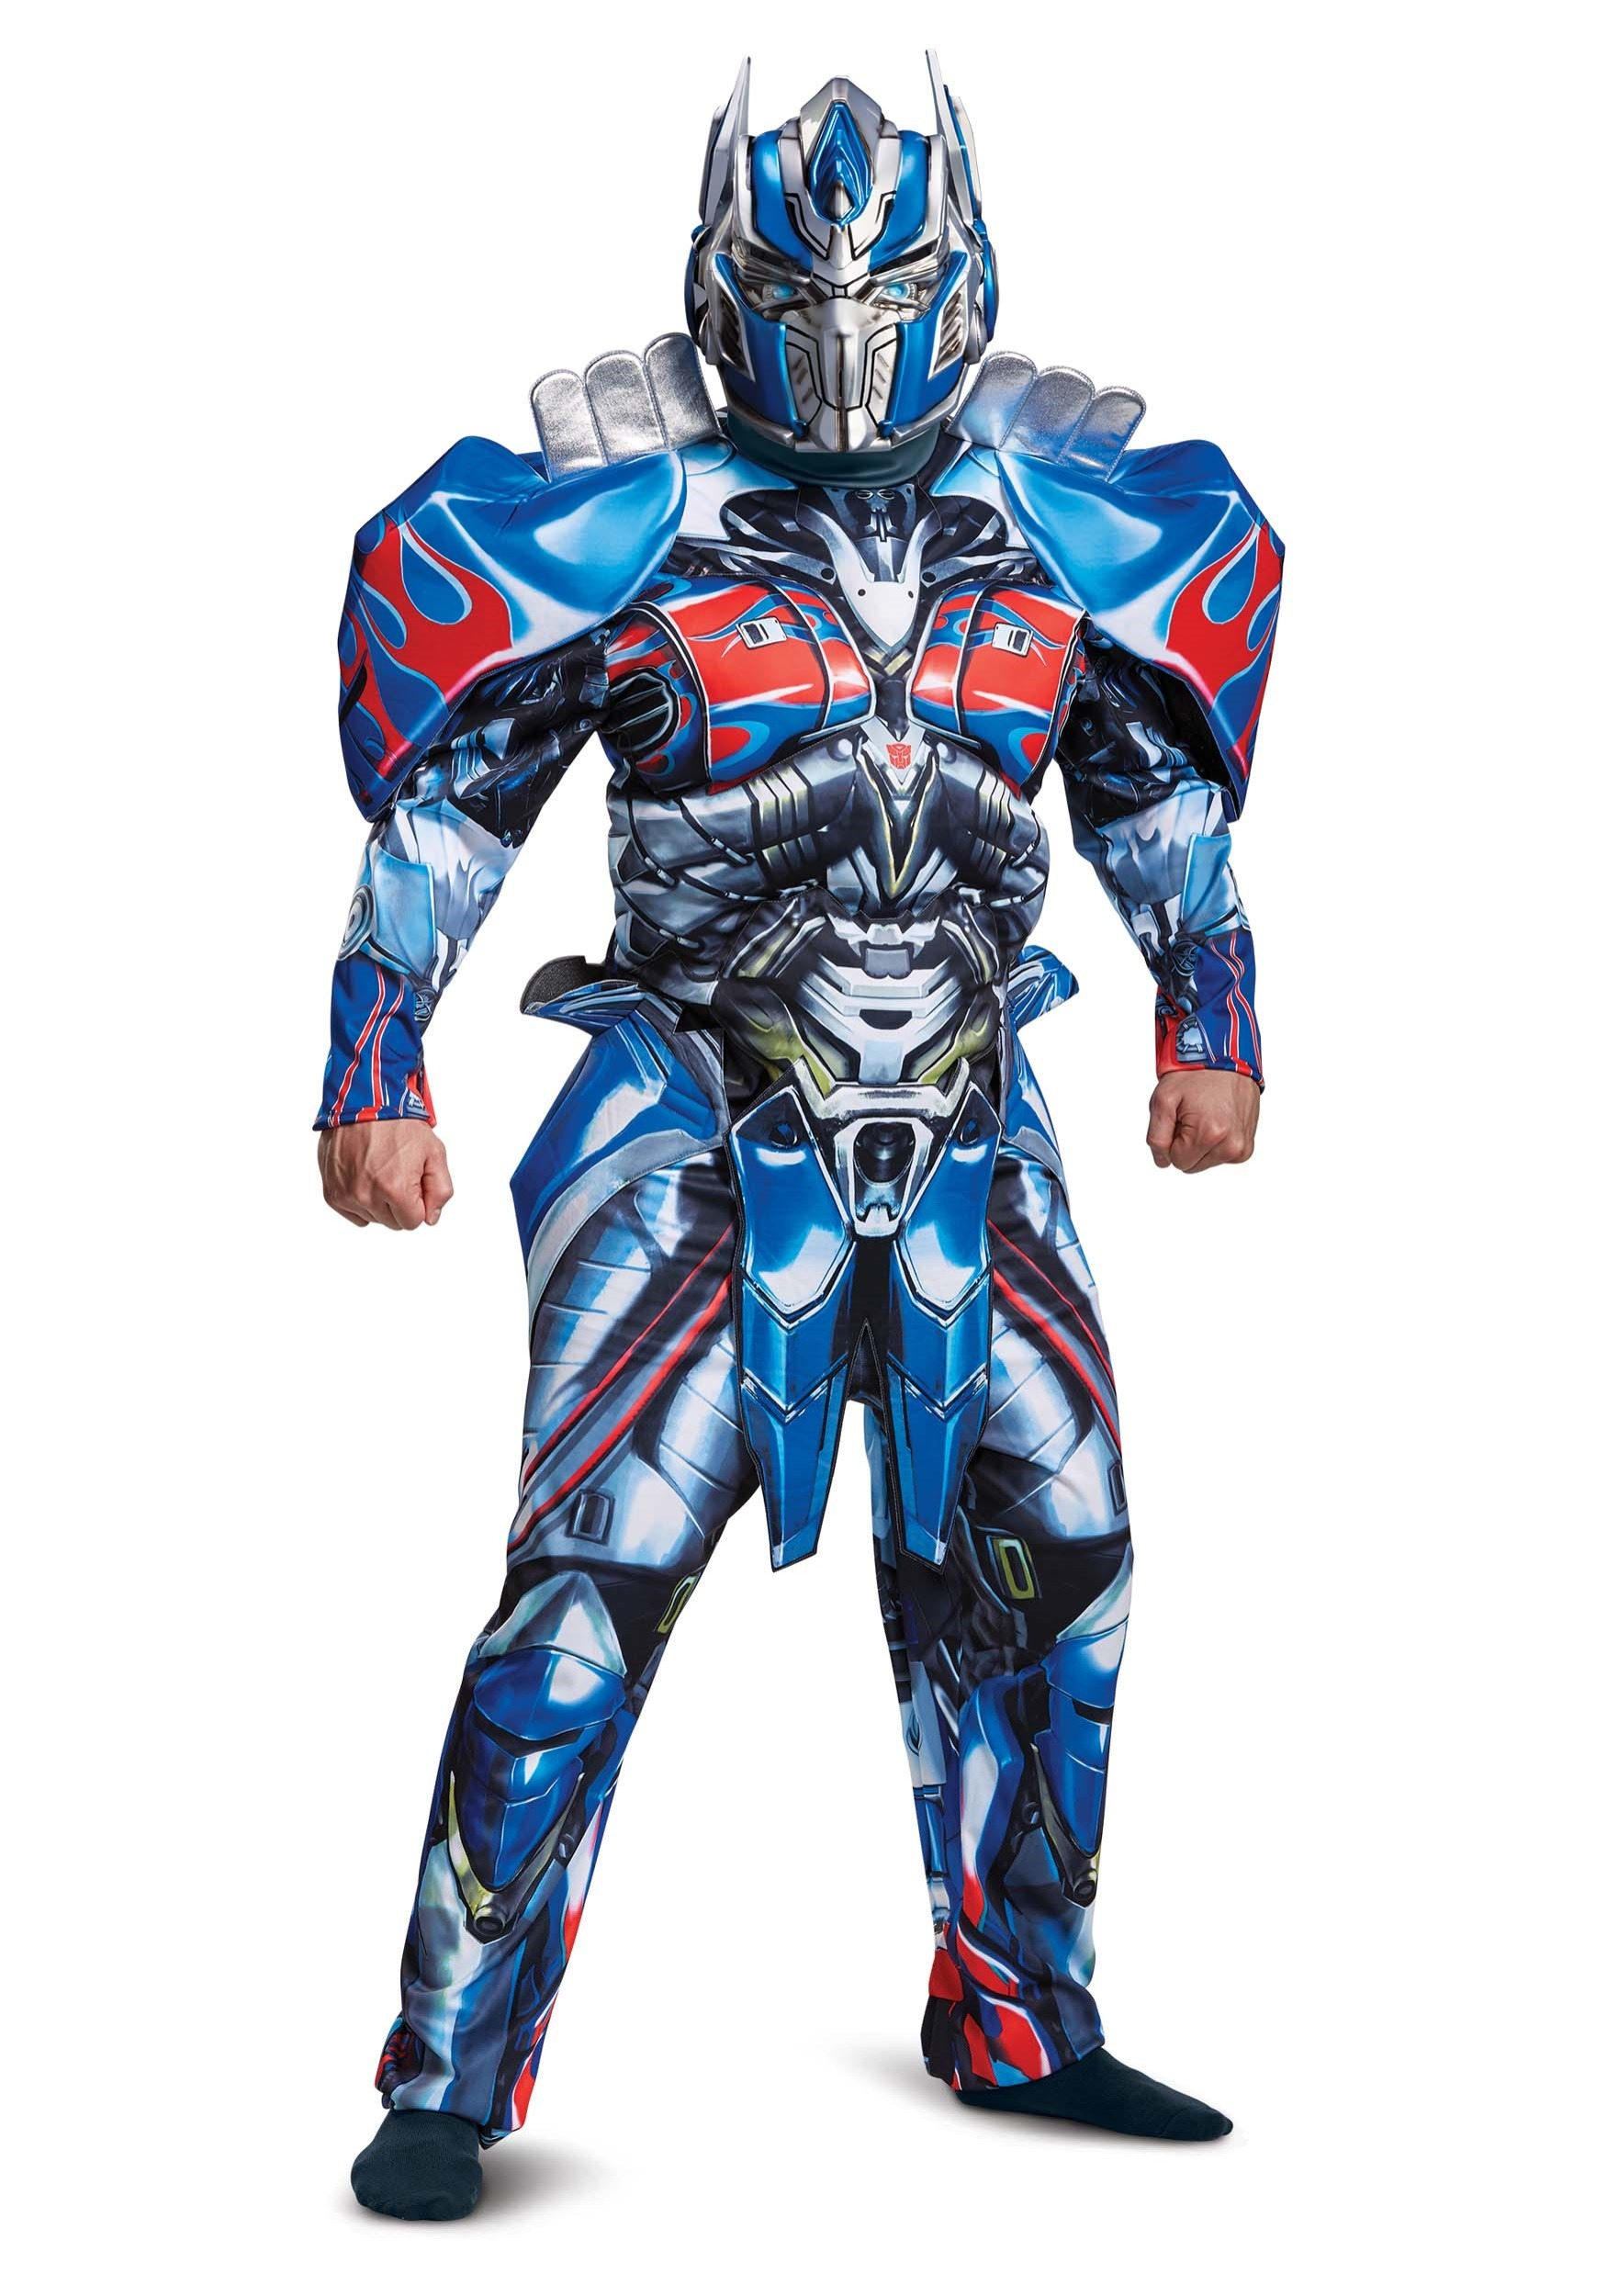 Transformers 5 Deluxe Optimus Prime Costume For Adults